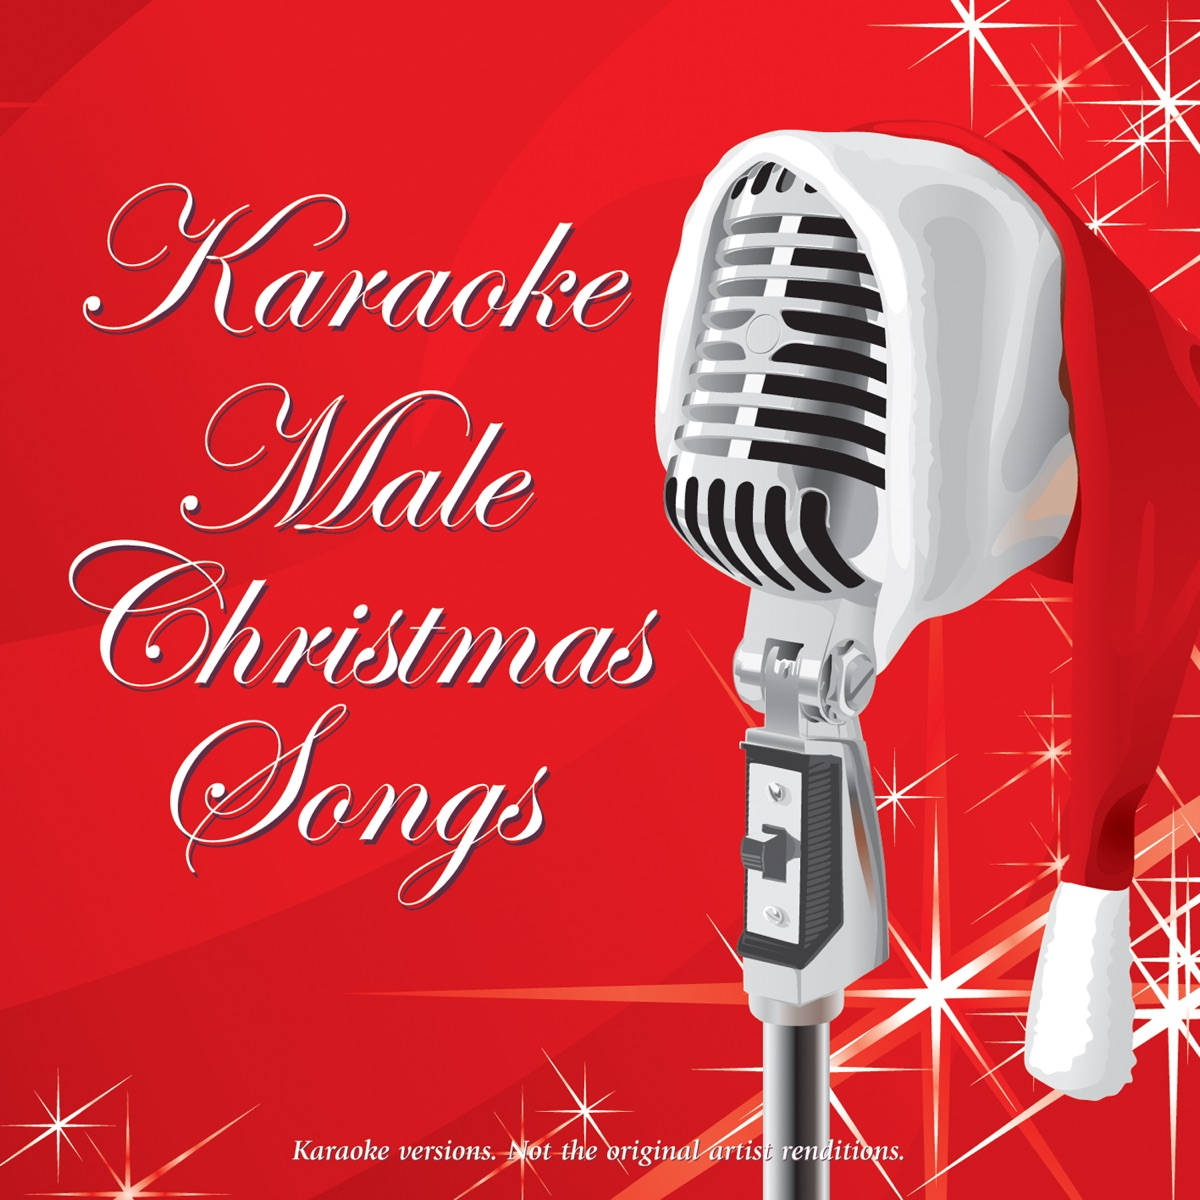 Karaoke - Male Christmas Songs Album Cover by Ameritz - Karaoke